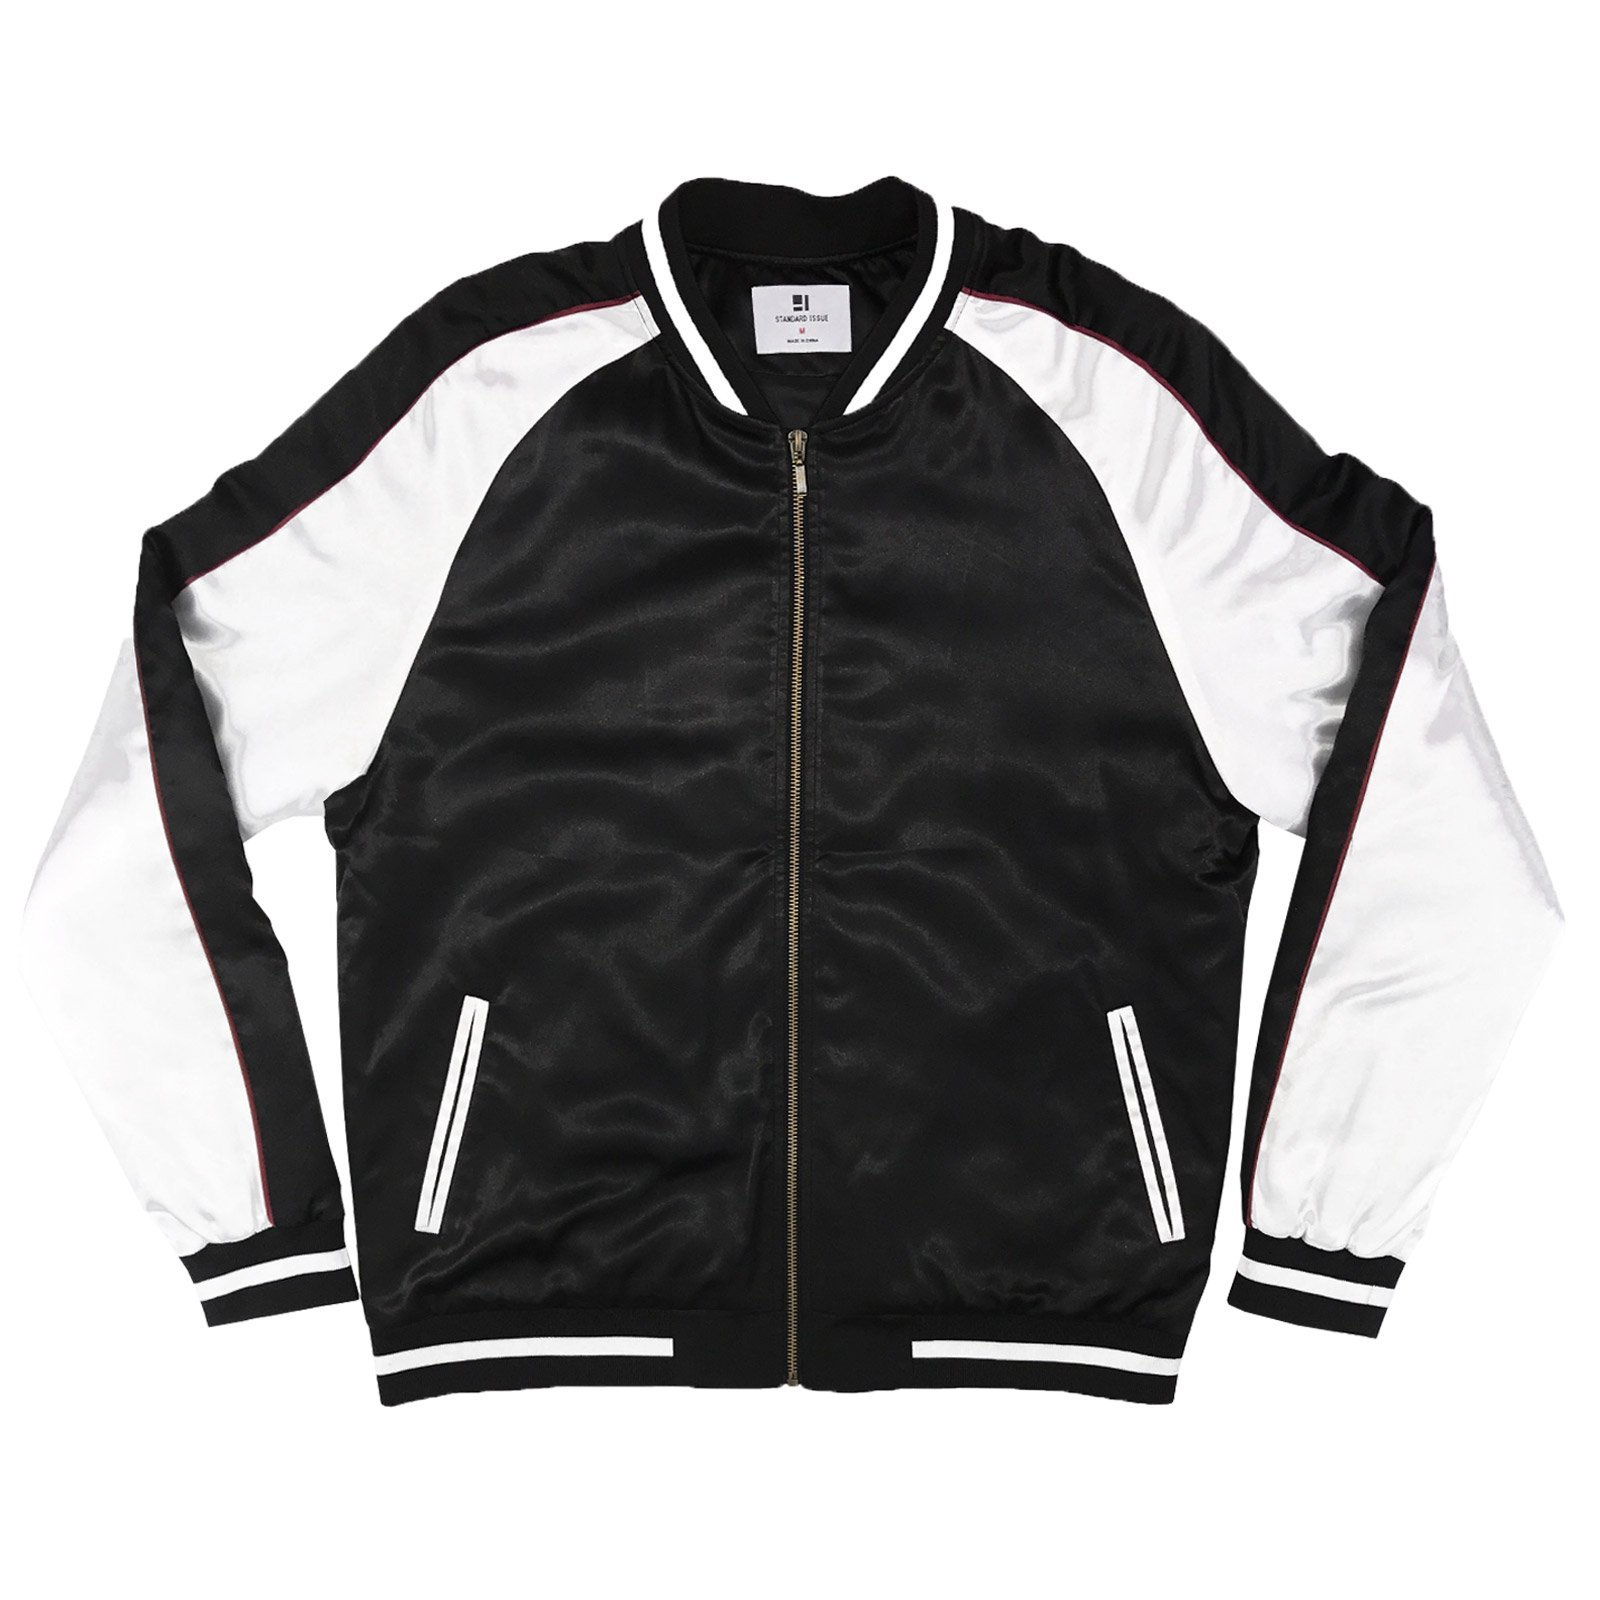 Standard Issue Solid Color Block Satin Baseball Varsity Bomber - Black/White, Black / White, Large by Standard Issue